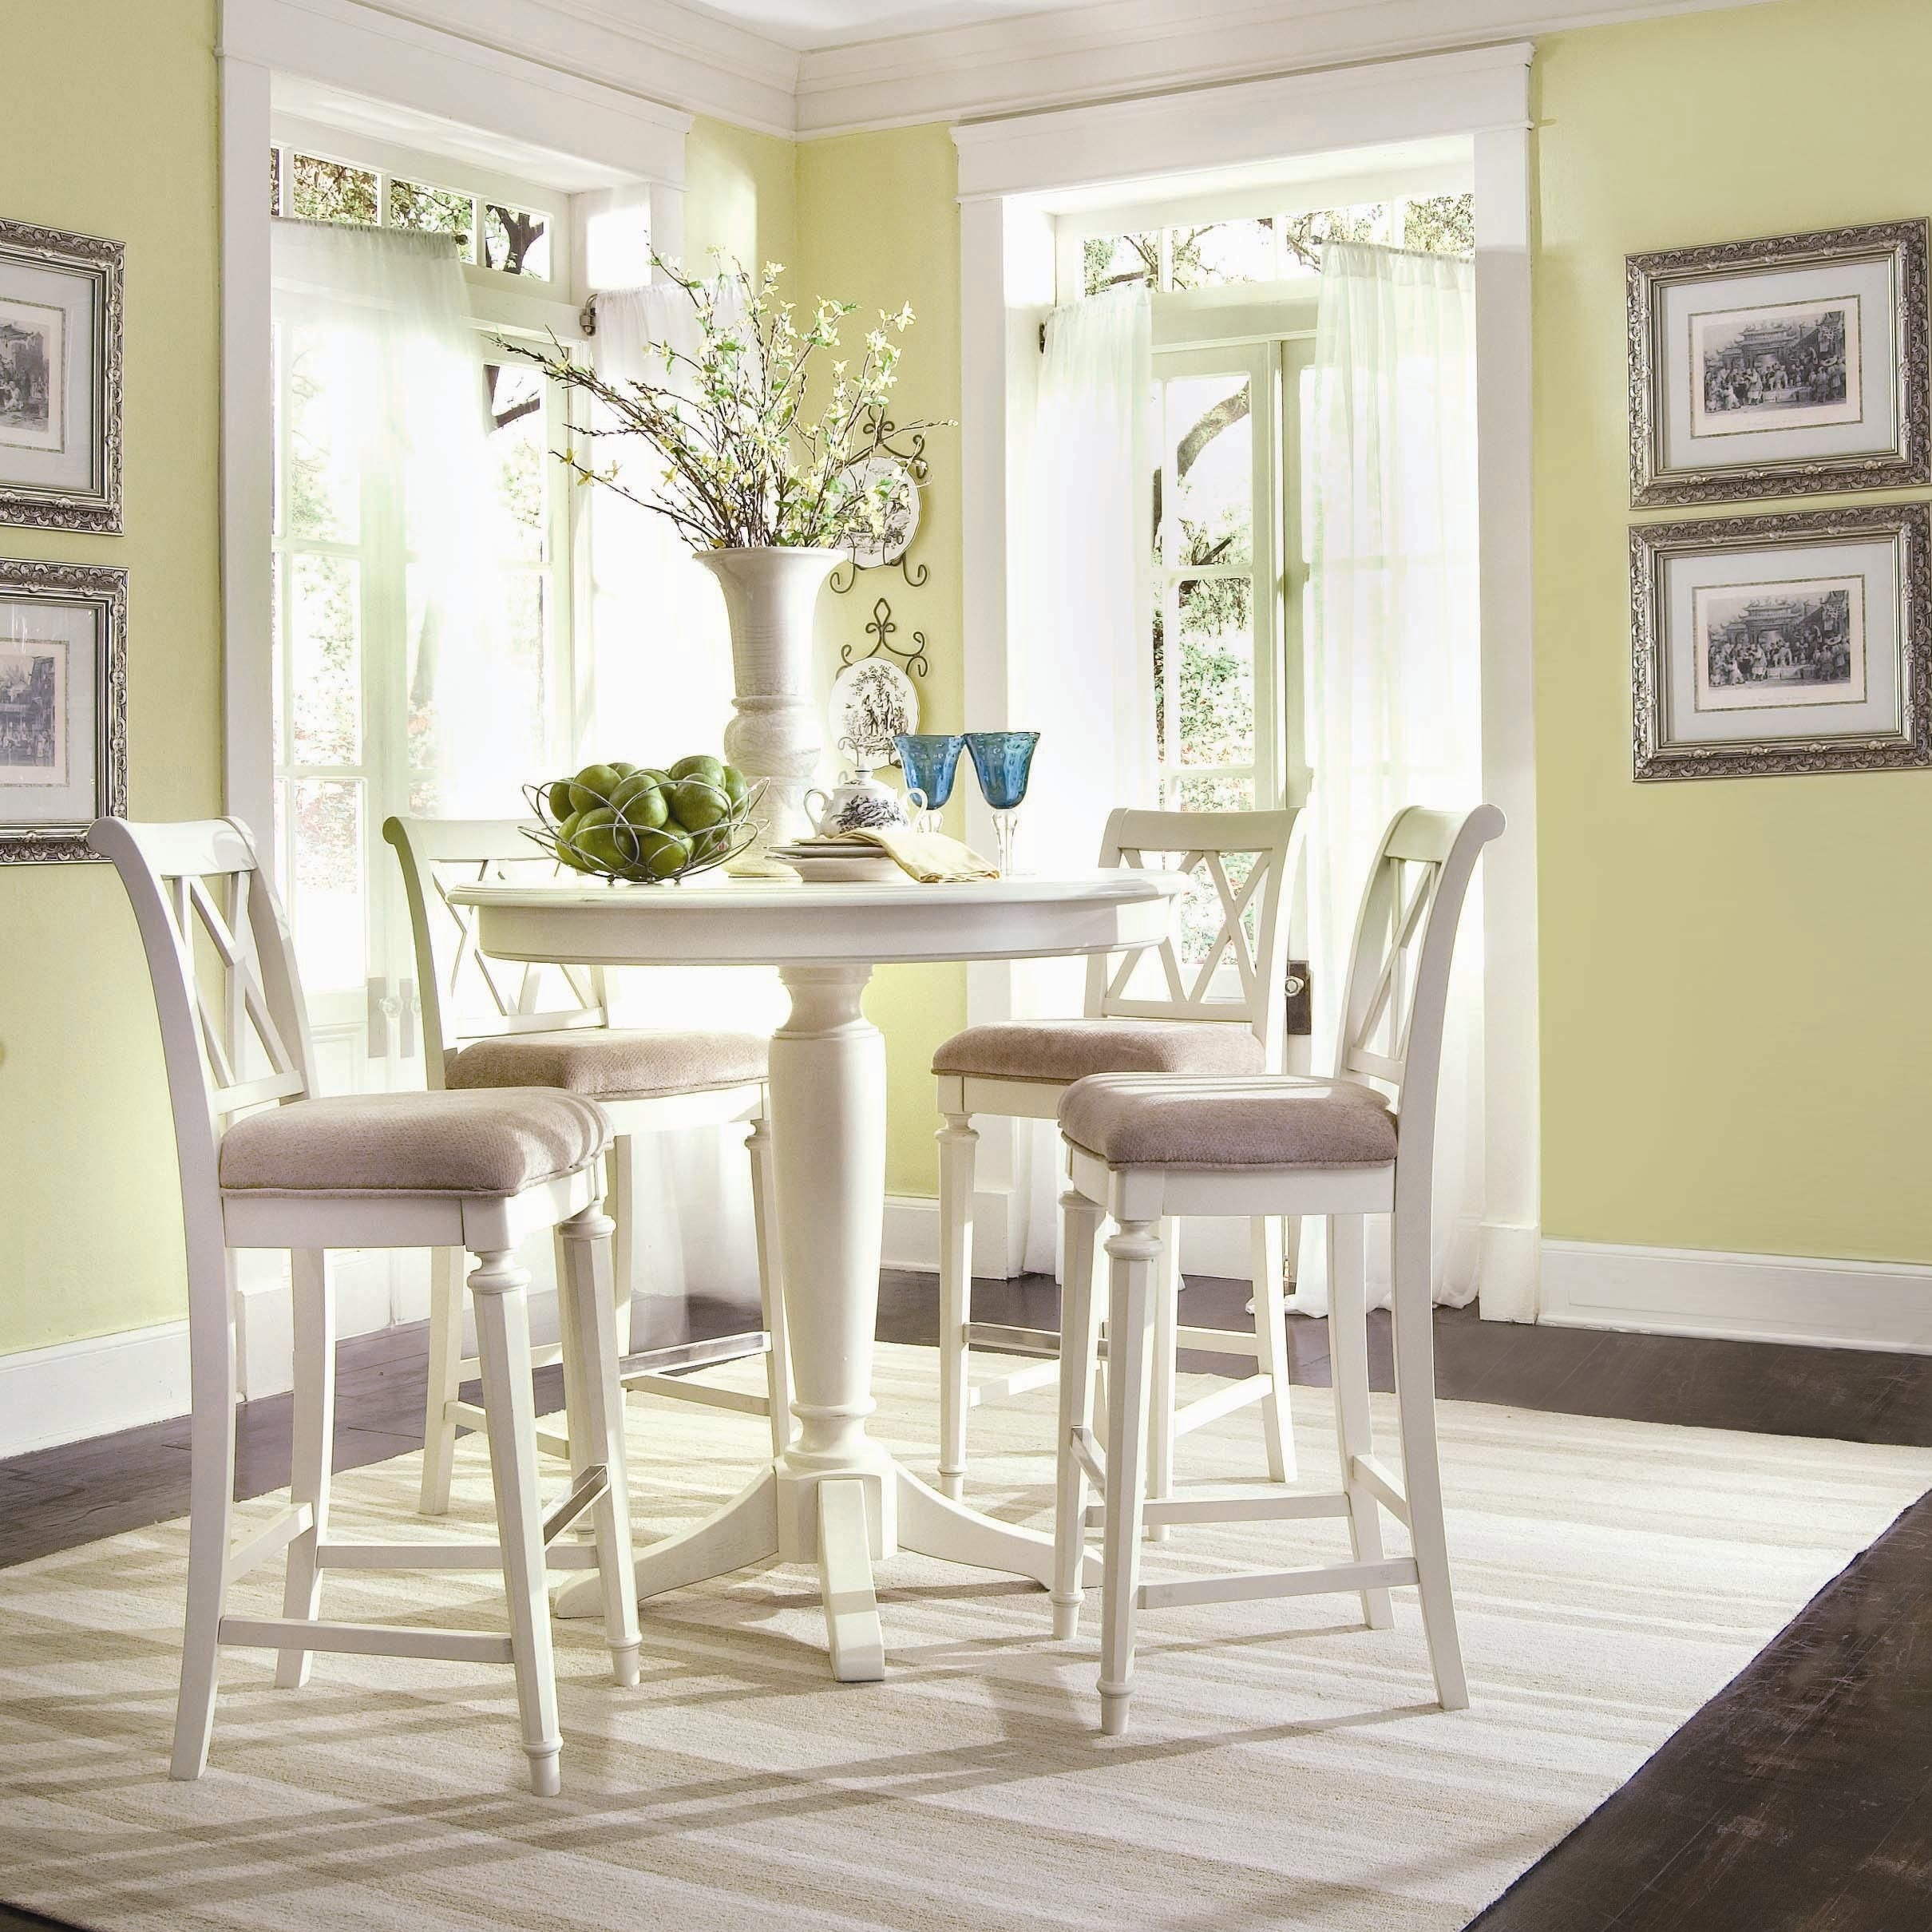 Create A Cottage Look With A Small Gathering Table! #cottage #life Within 2017 Palazzo 9 Piece Dining Sets With Pearson White Side Chairs (View 12 of 20)